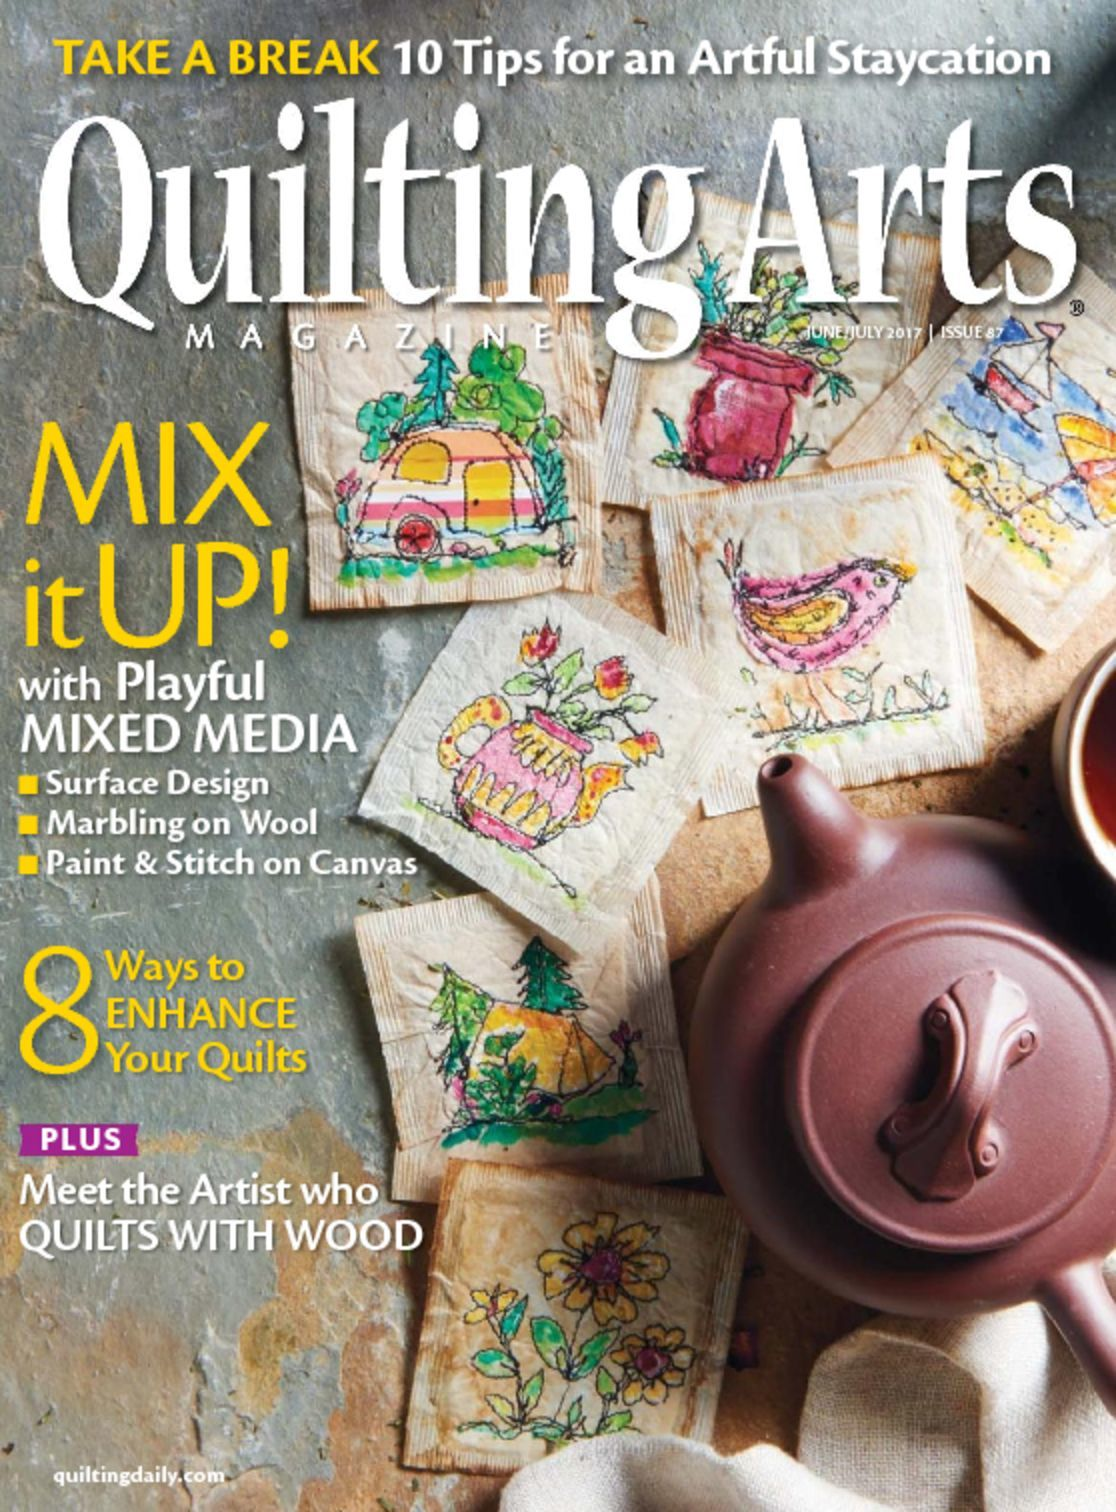 Quilting Arts Magazine-October/November 2007-Issue 29